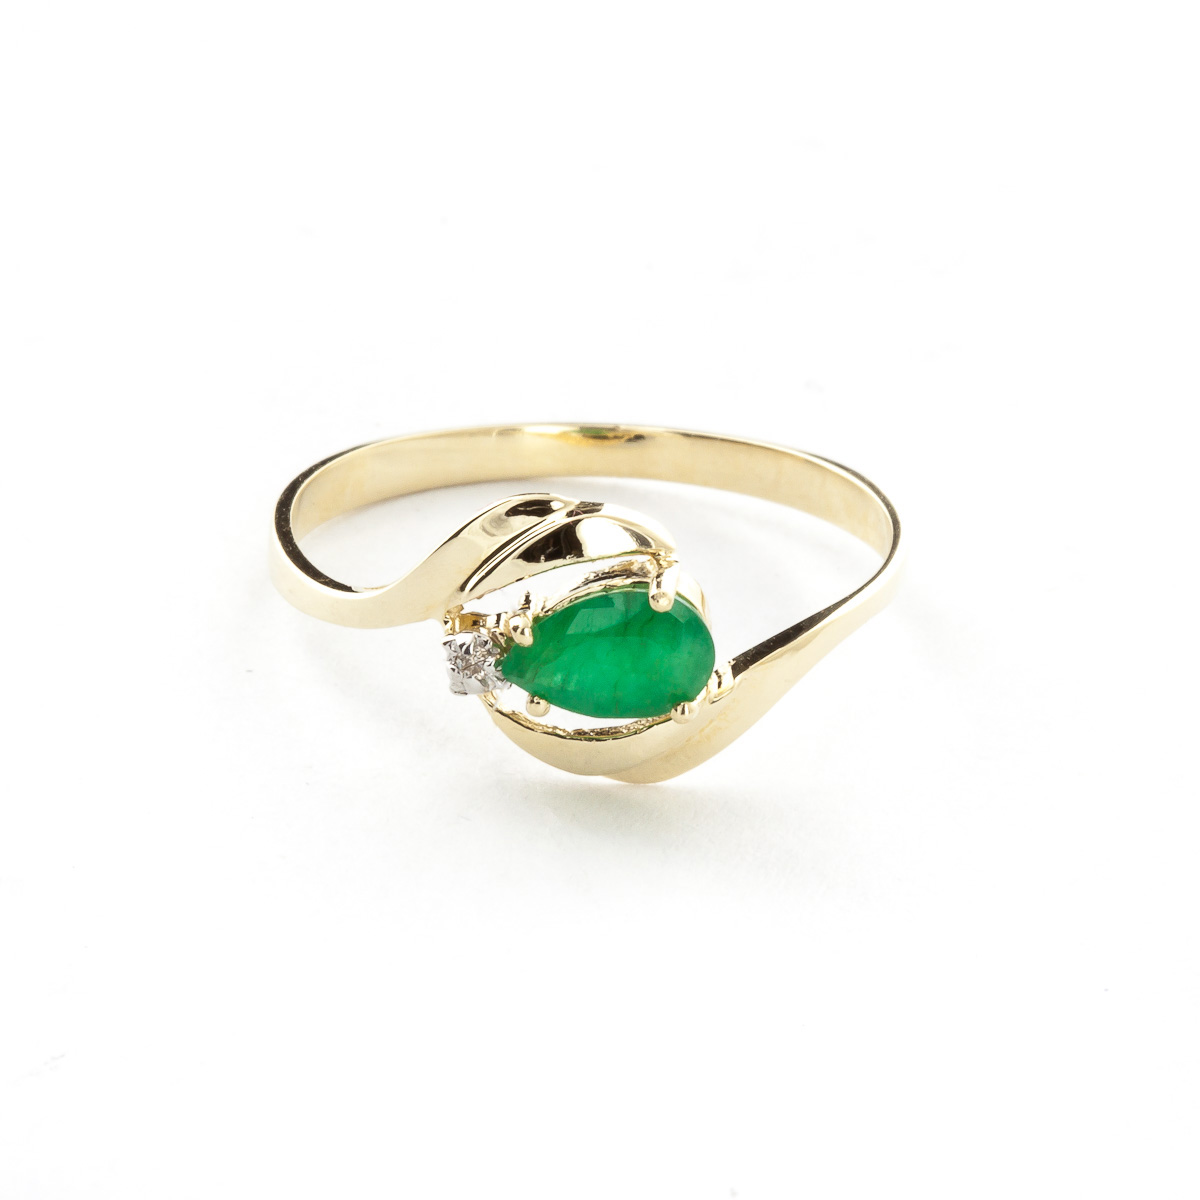 Emerald & Diamond Flare Ring in 18ct Gold